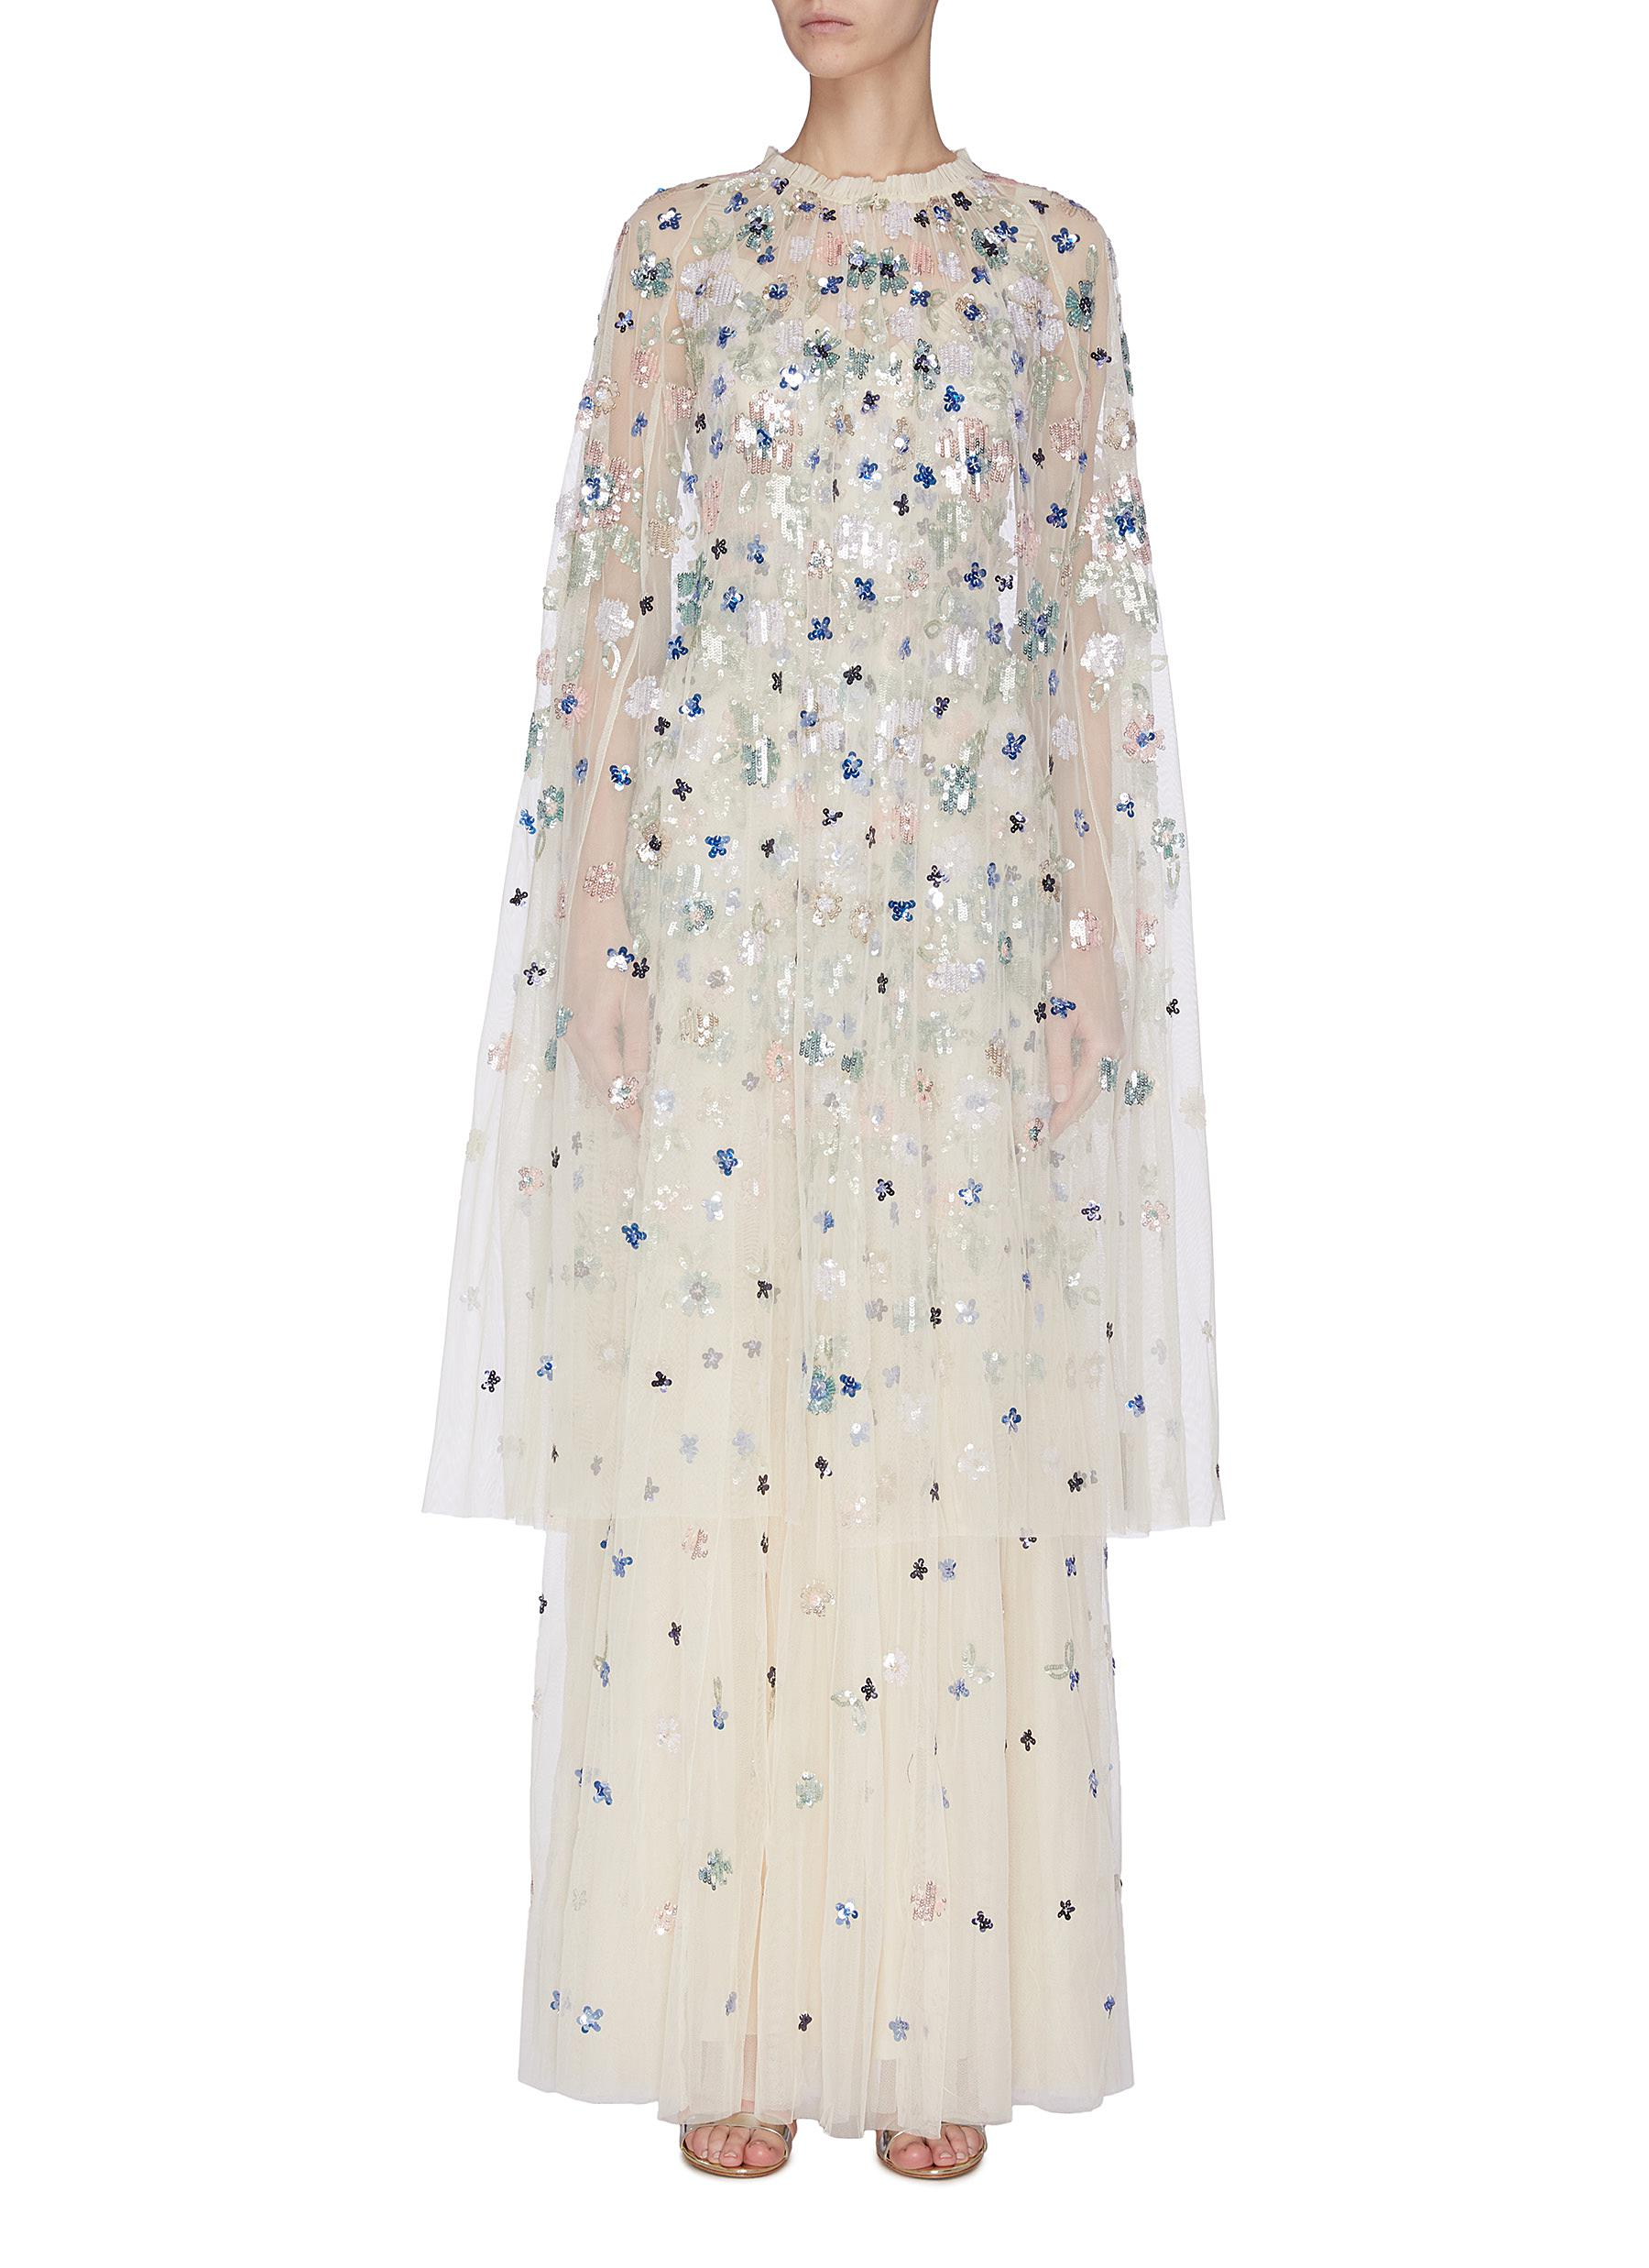 Buy Needle & Thread Jackets 'Wildflower' sequin embroidered midaxi cape